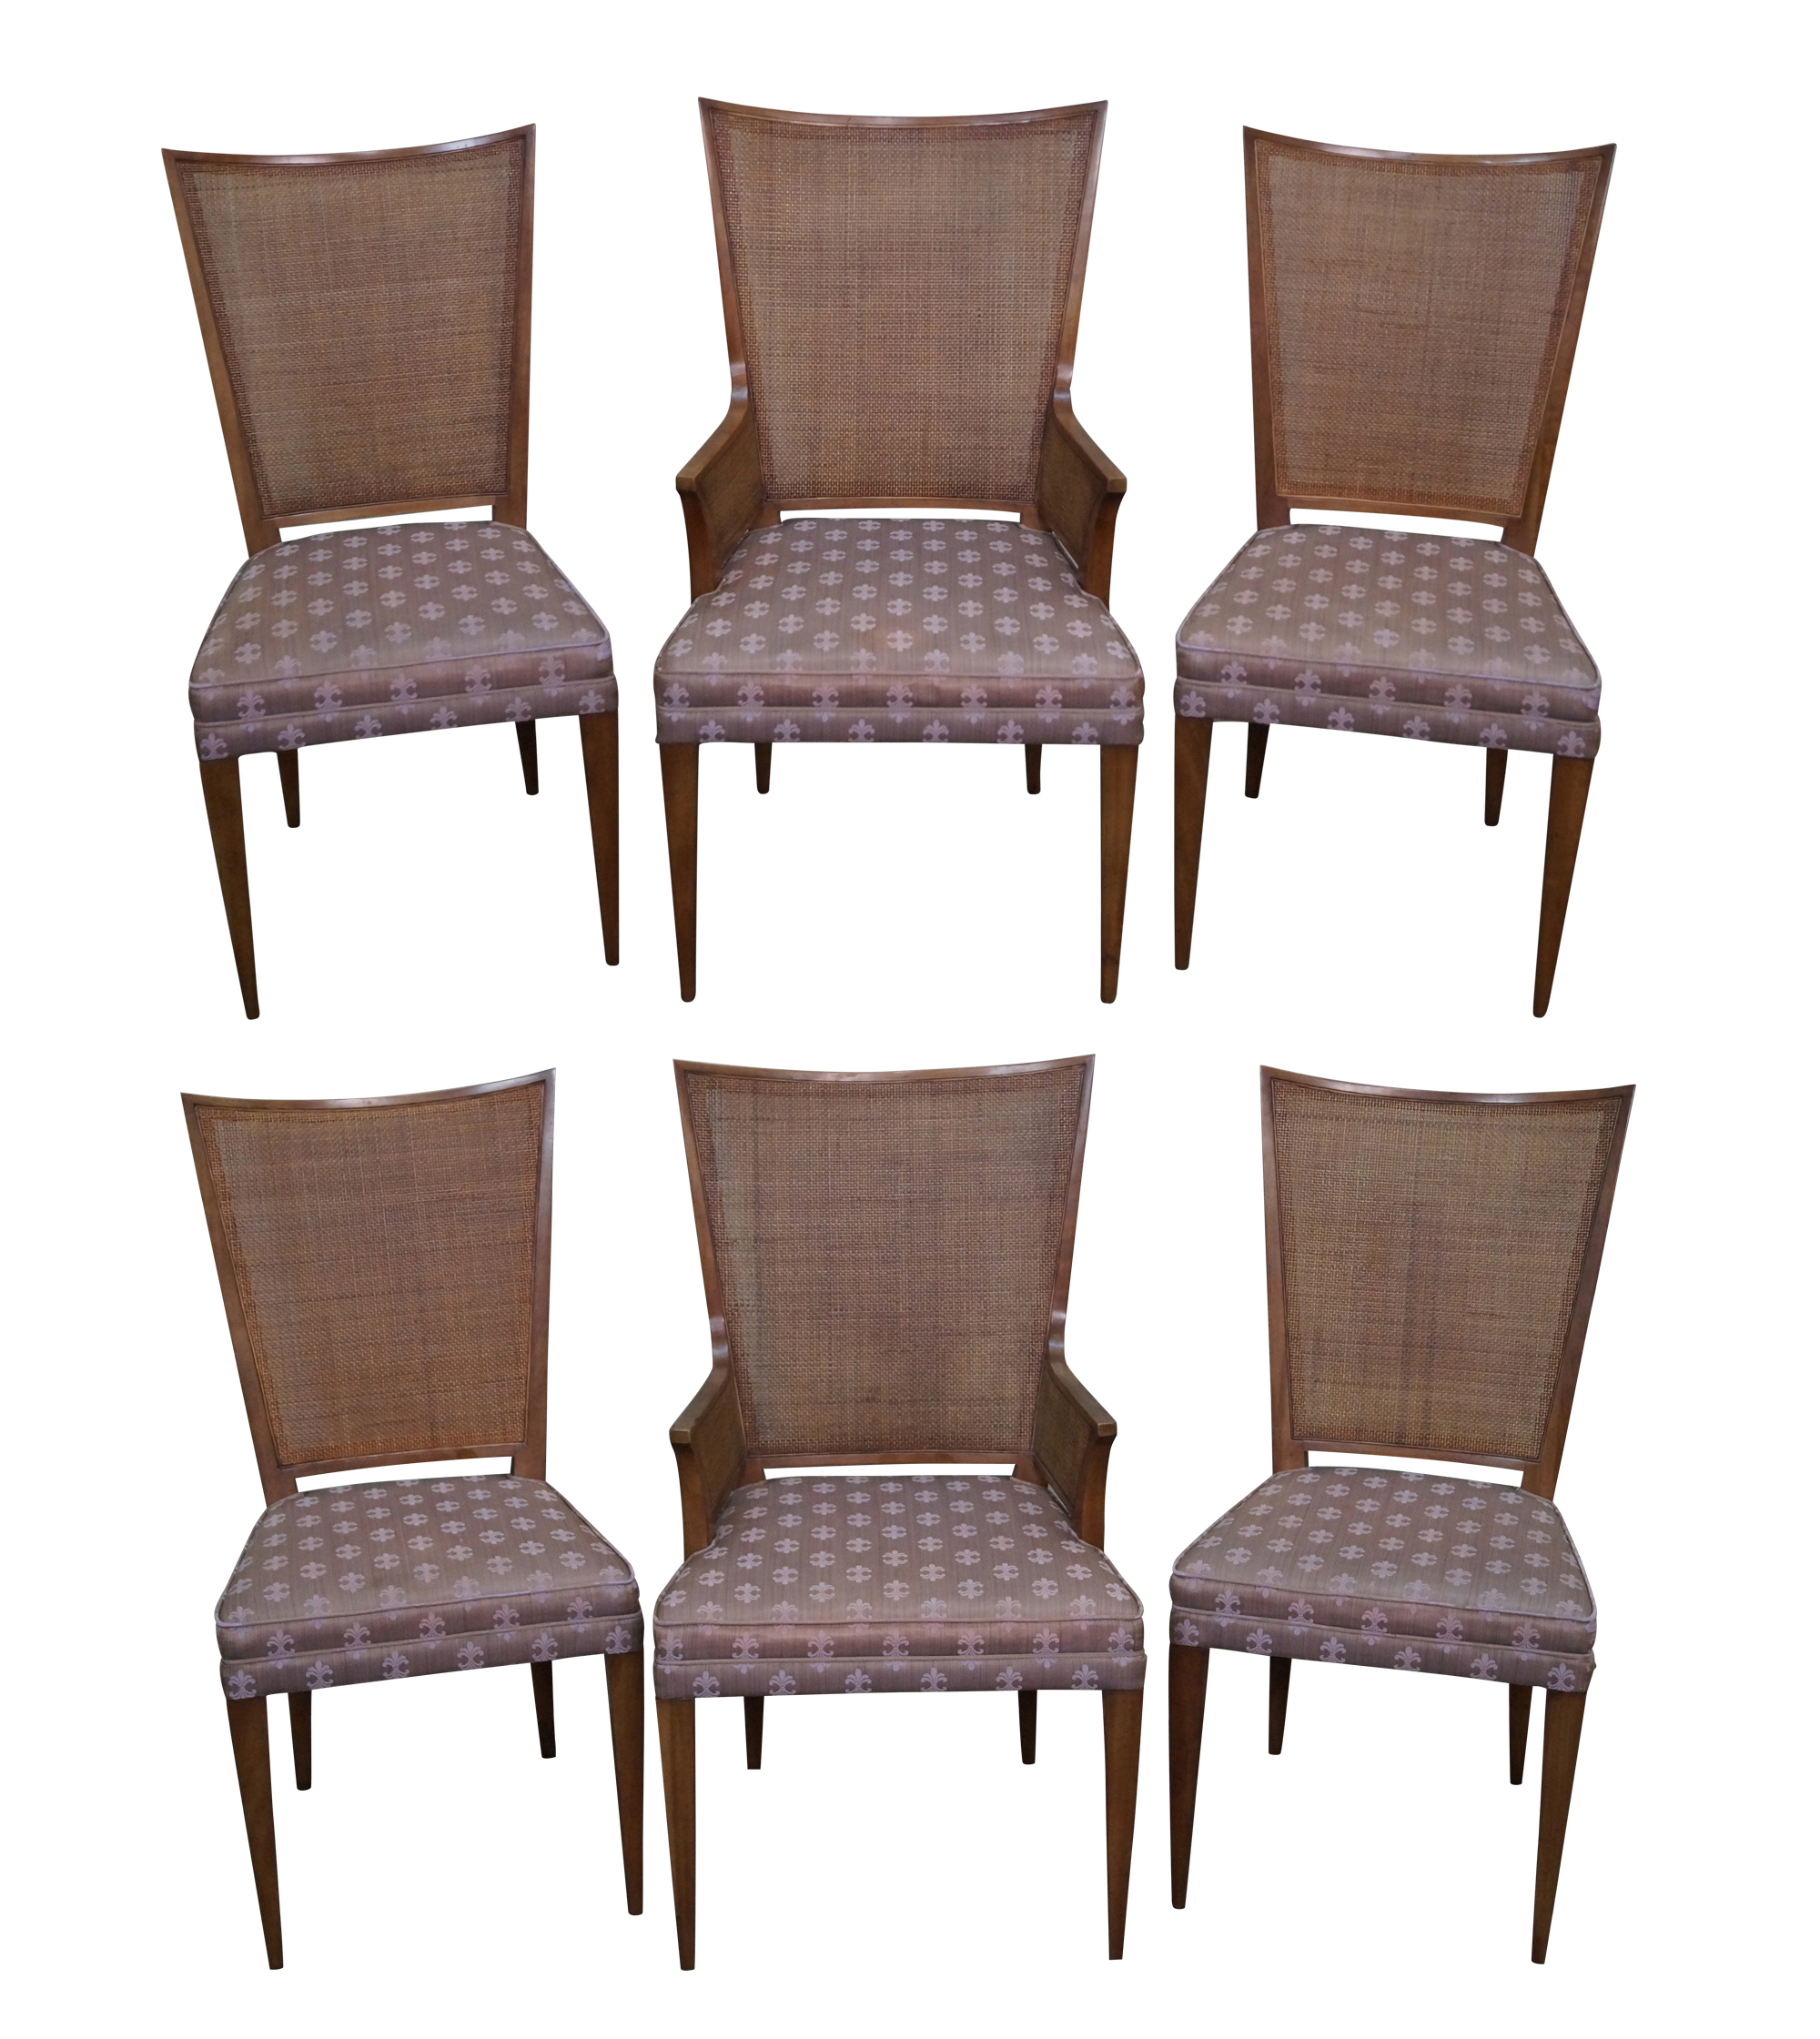 Cane Back Dining Chair - Image of widdicomb mid century cane back dining chairs 6